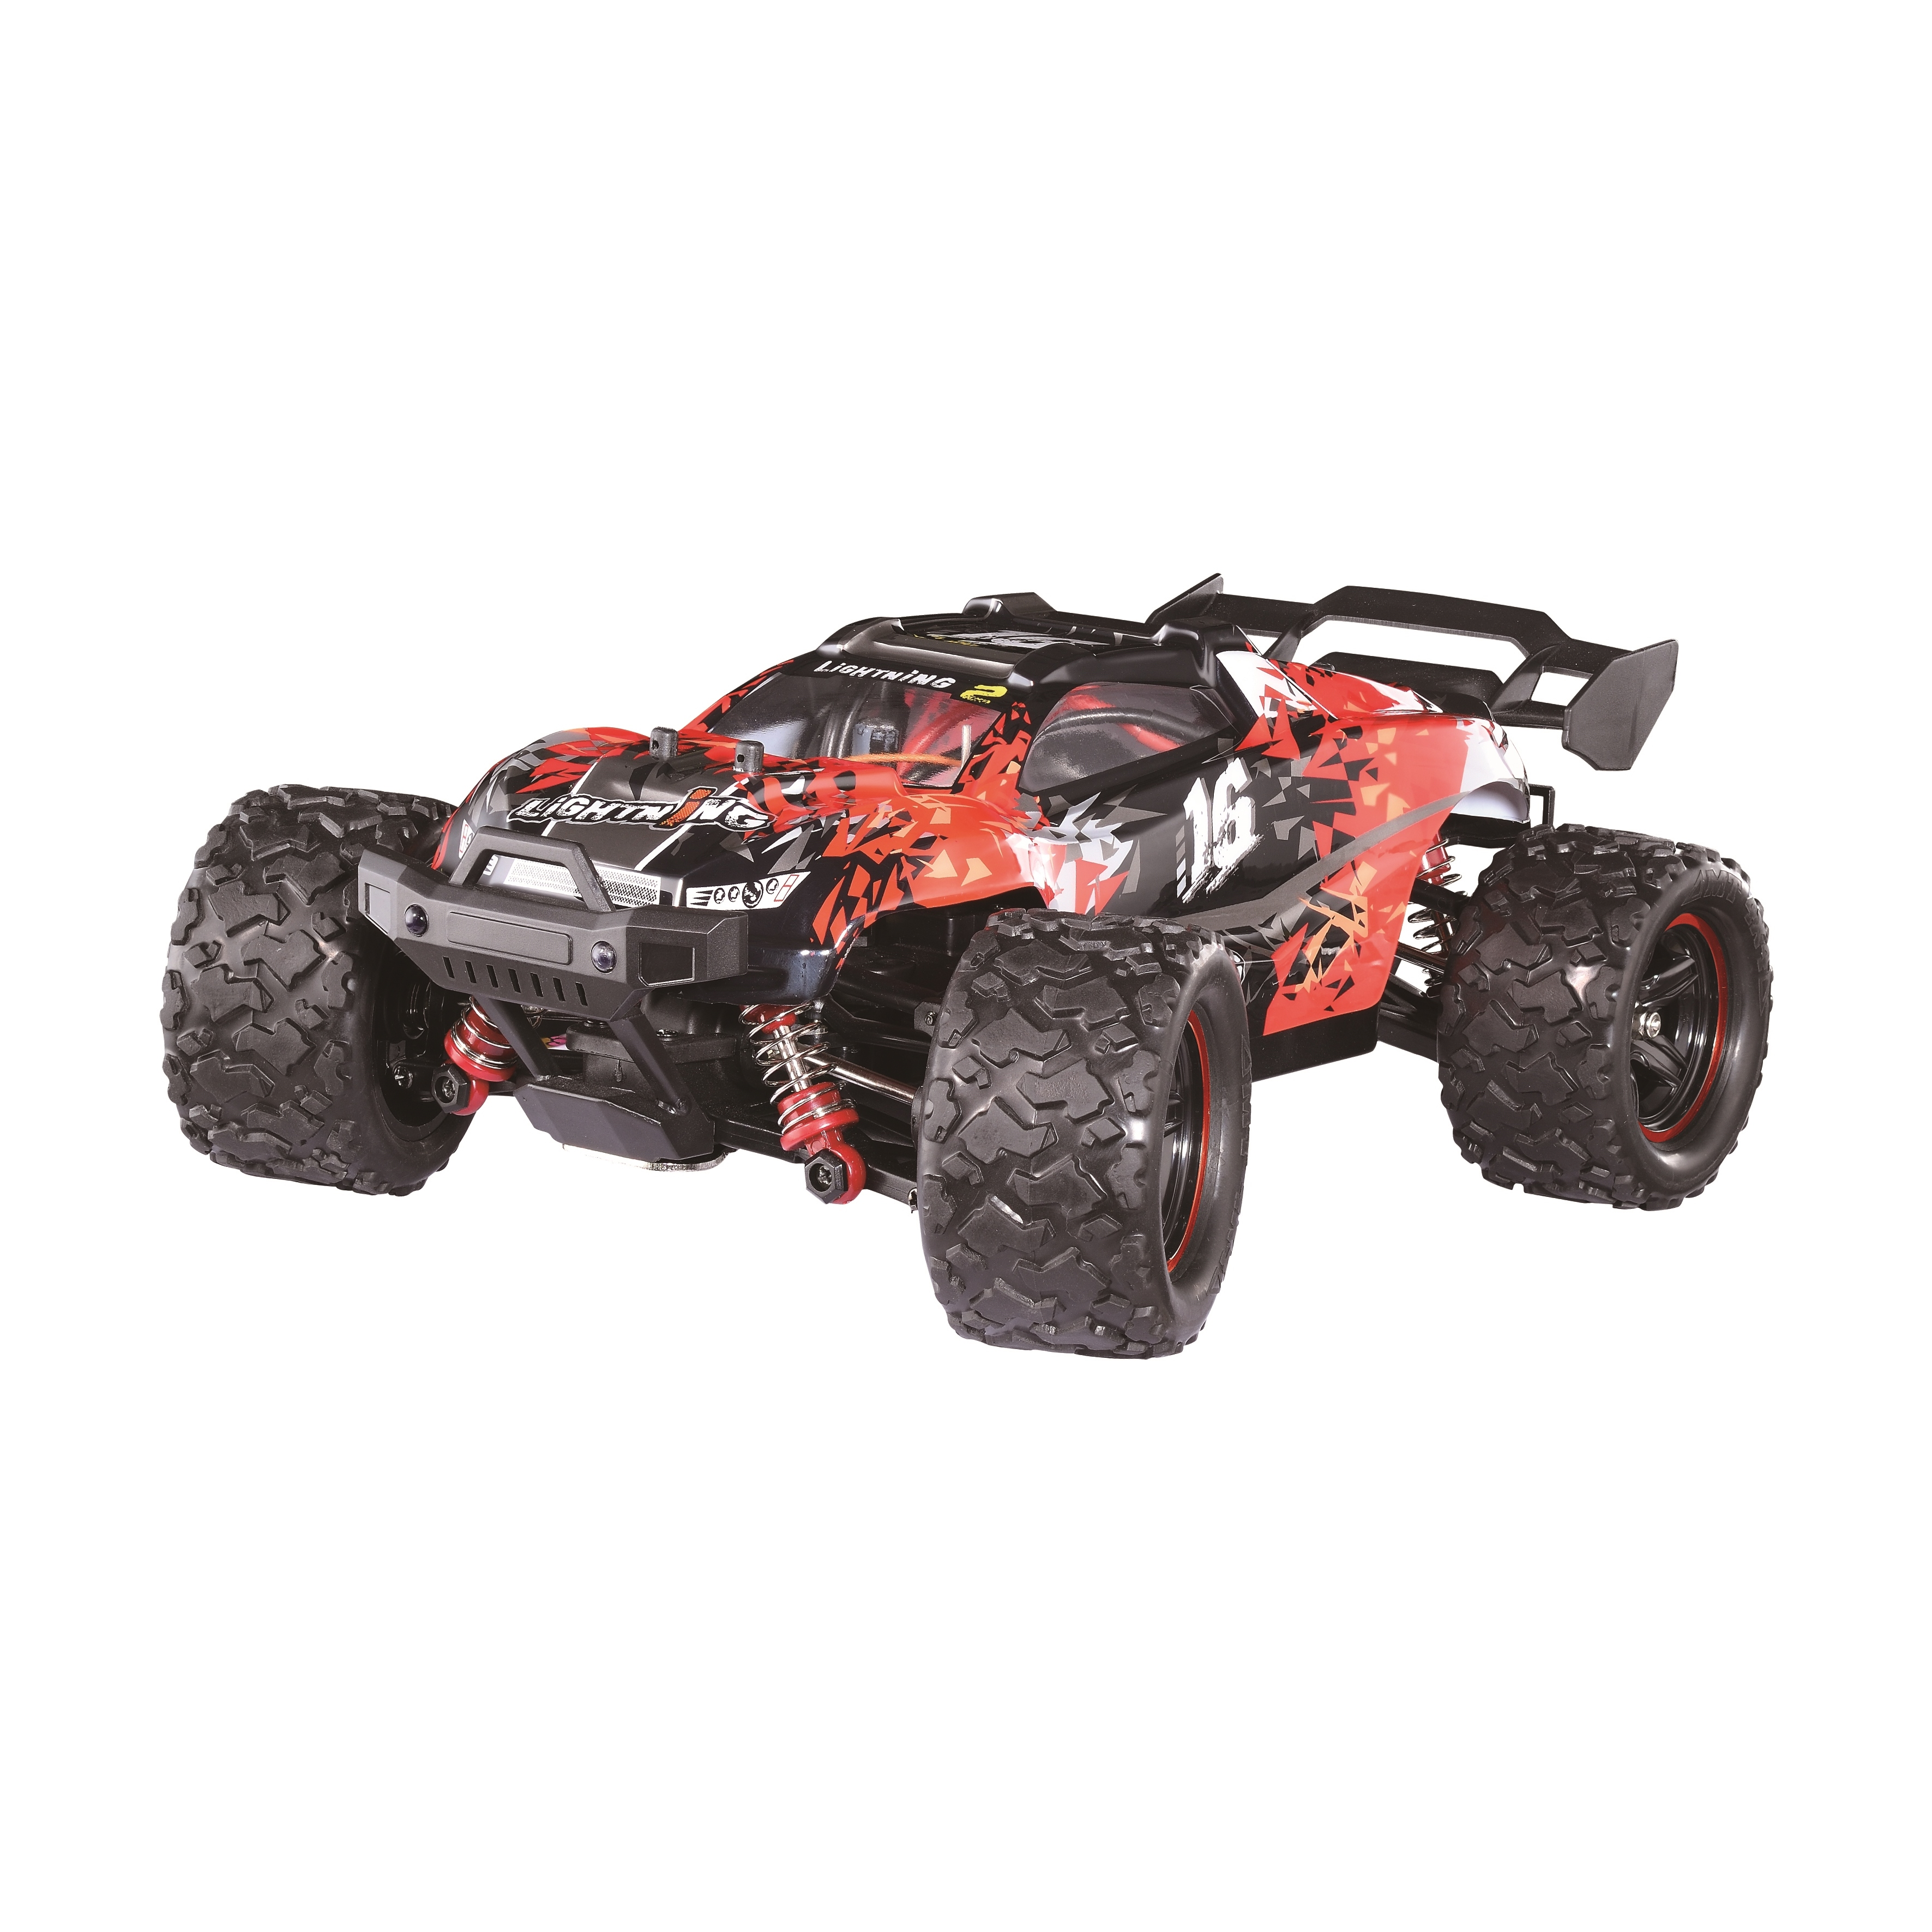 HS 18421 18422 18423 1/18 2.4G Alloy Brushless Off Road High Speed RC Car Vehicle Models Full Proportional Control Red 2 battery